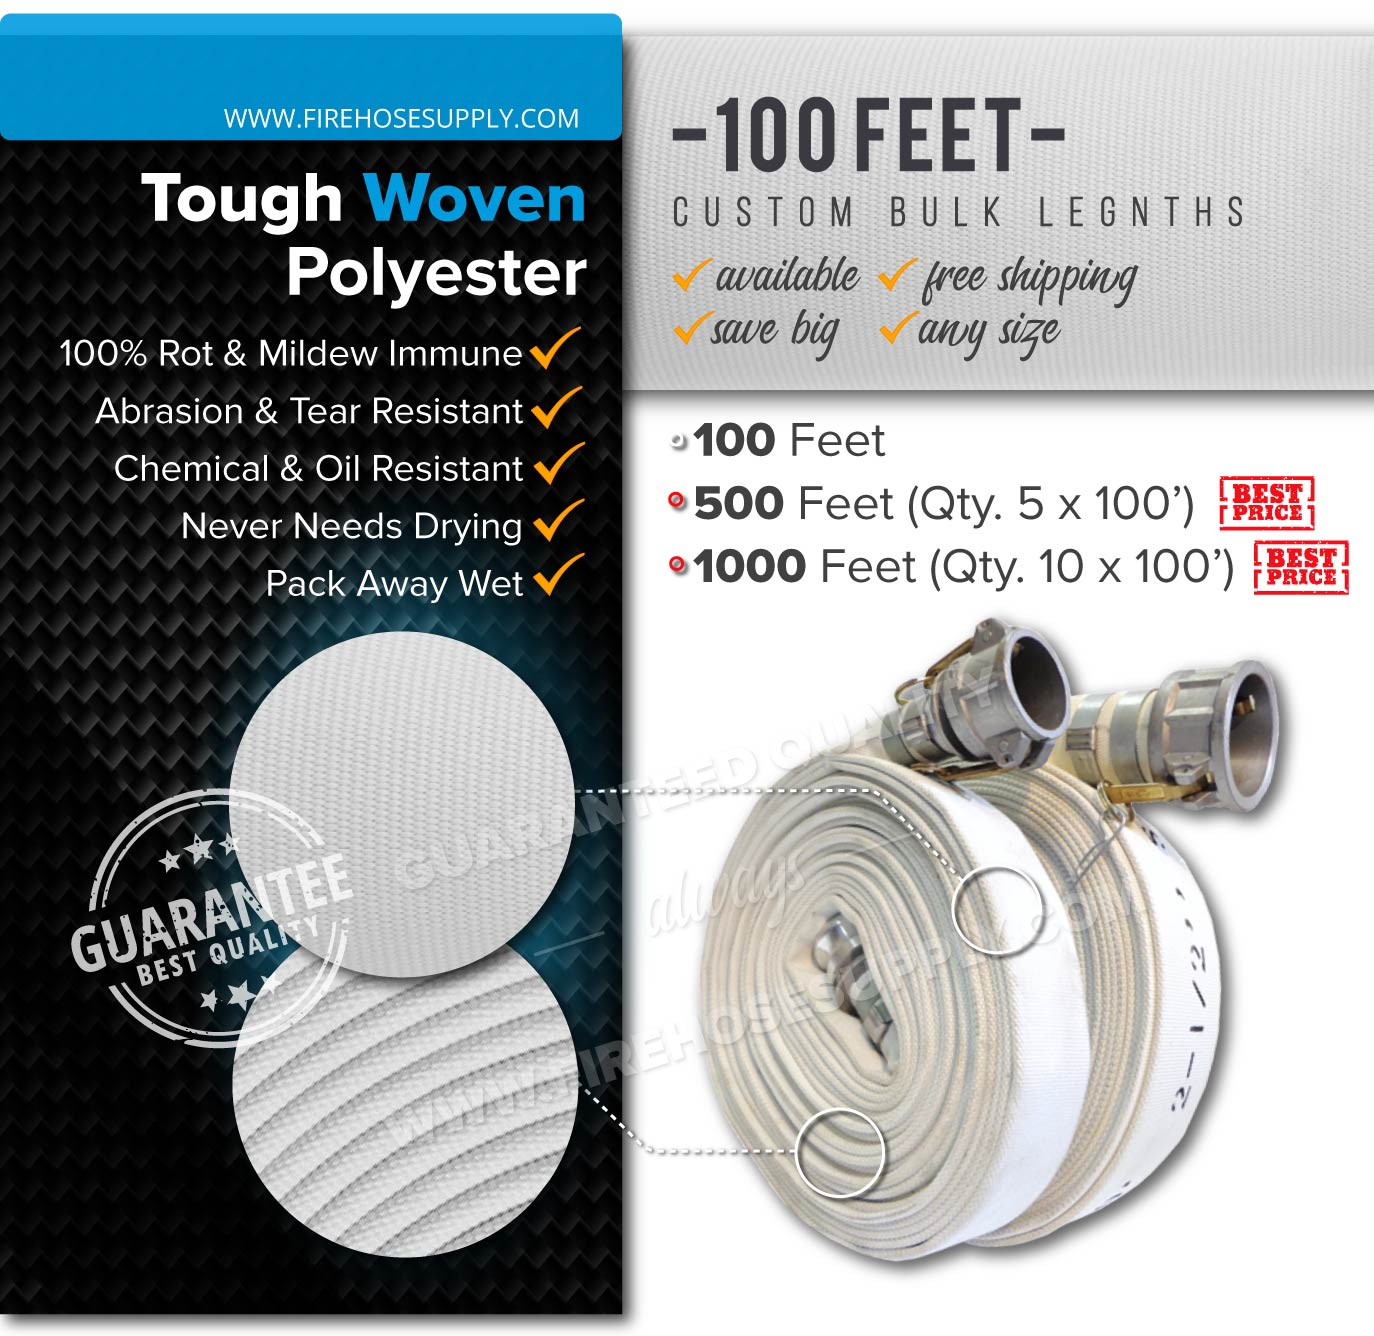 1 inch 100 feet camlock quick connect hose polyester bulk wholesale 1000 feet